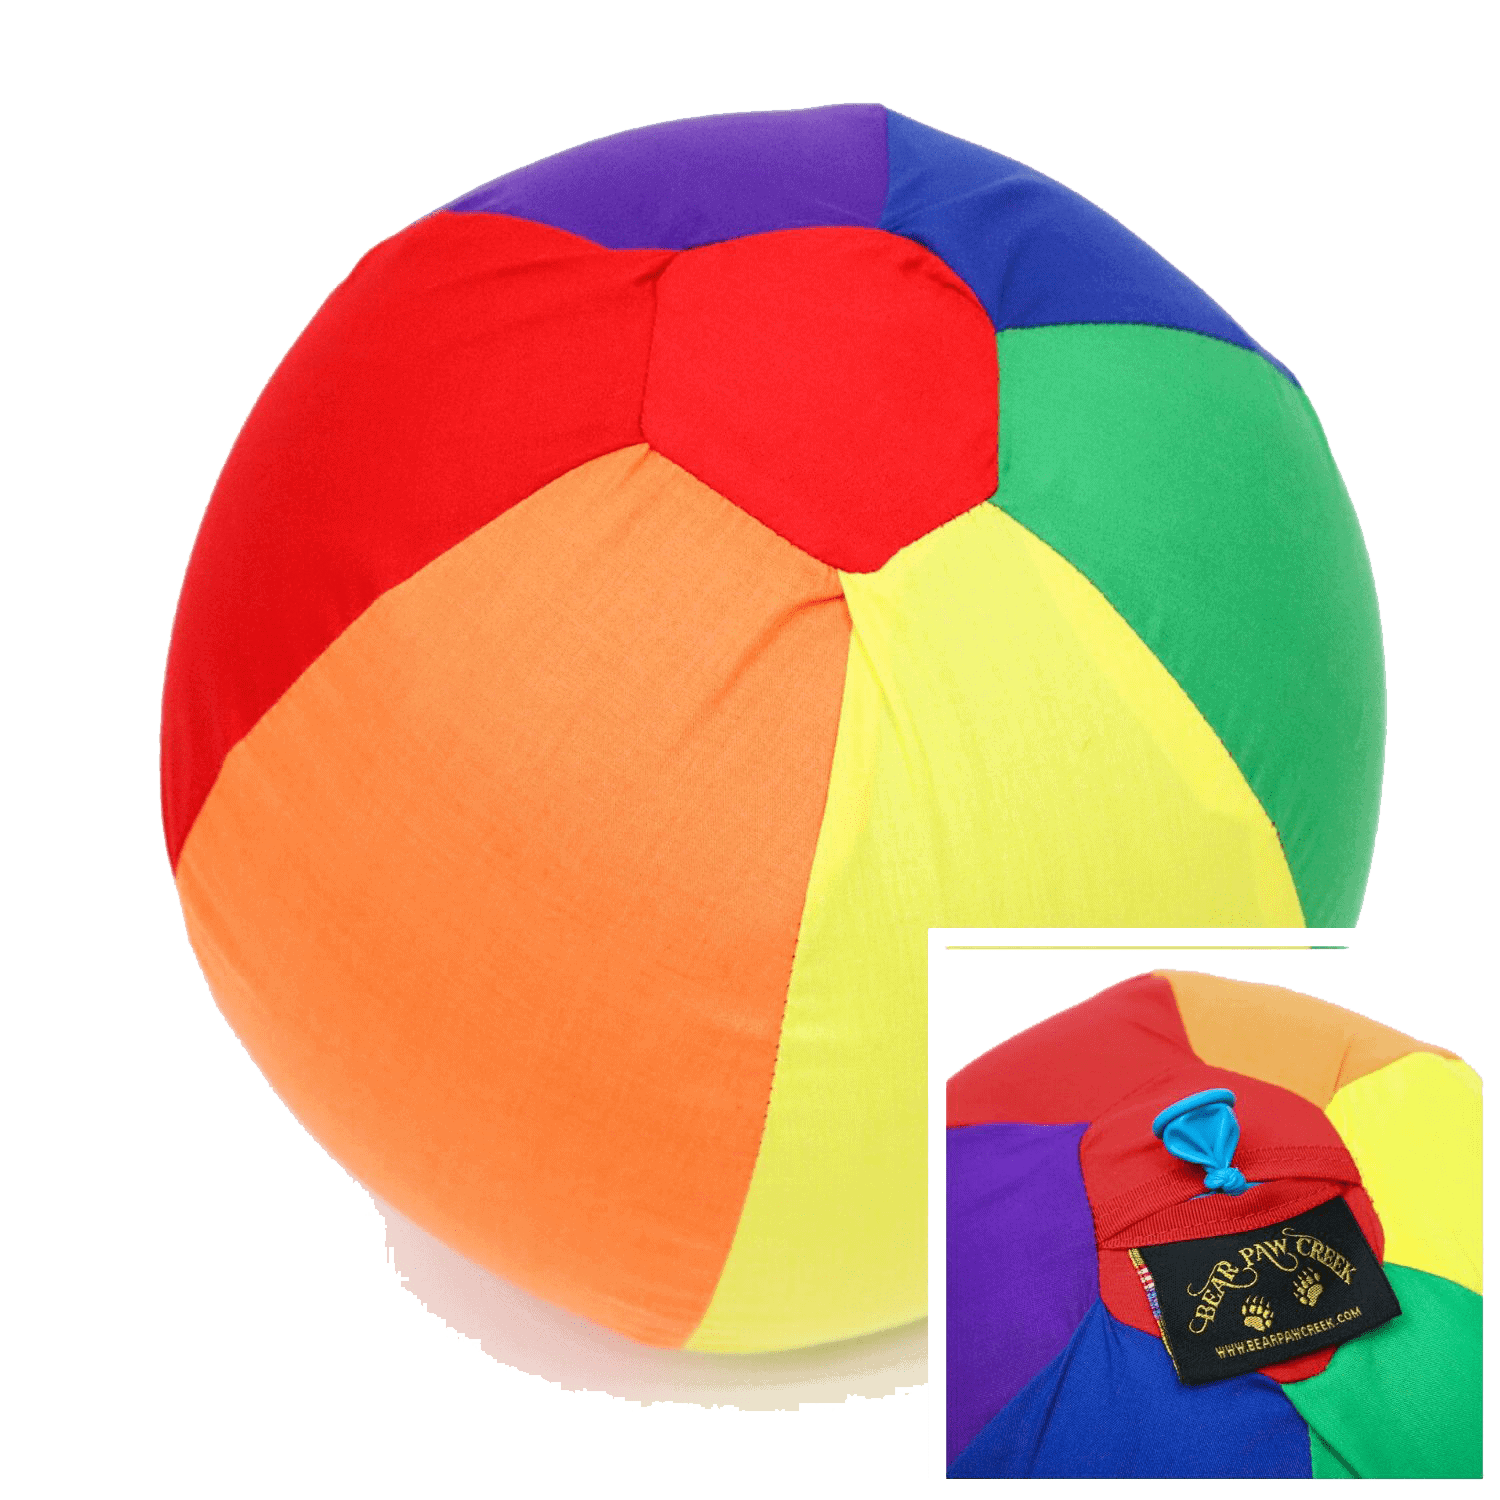 Colorful-Music-Education-Tool-Rainbow-Balloon-Ball-Parents